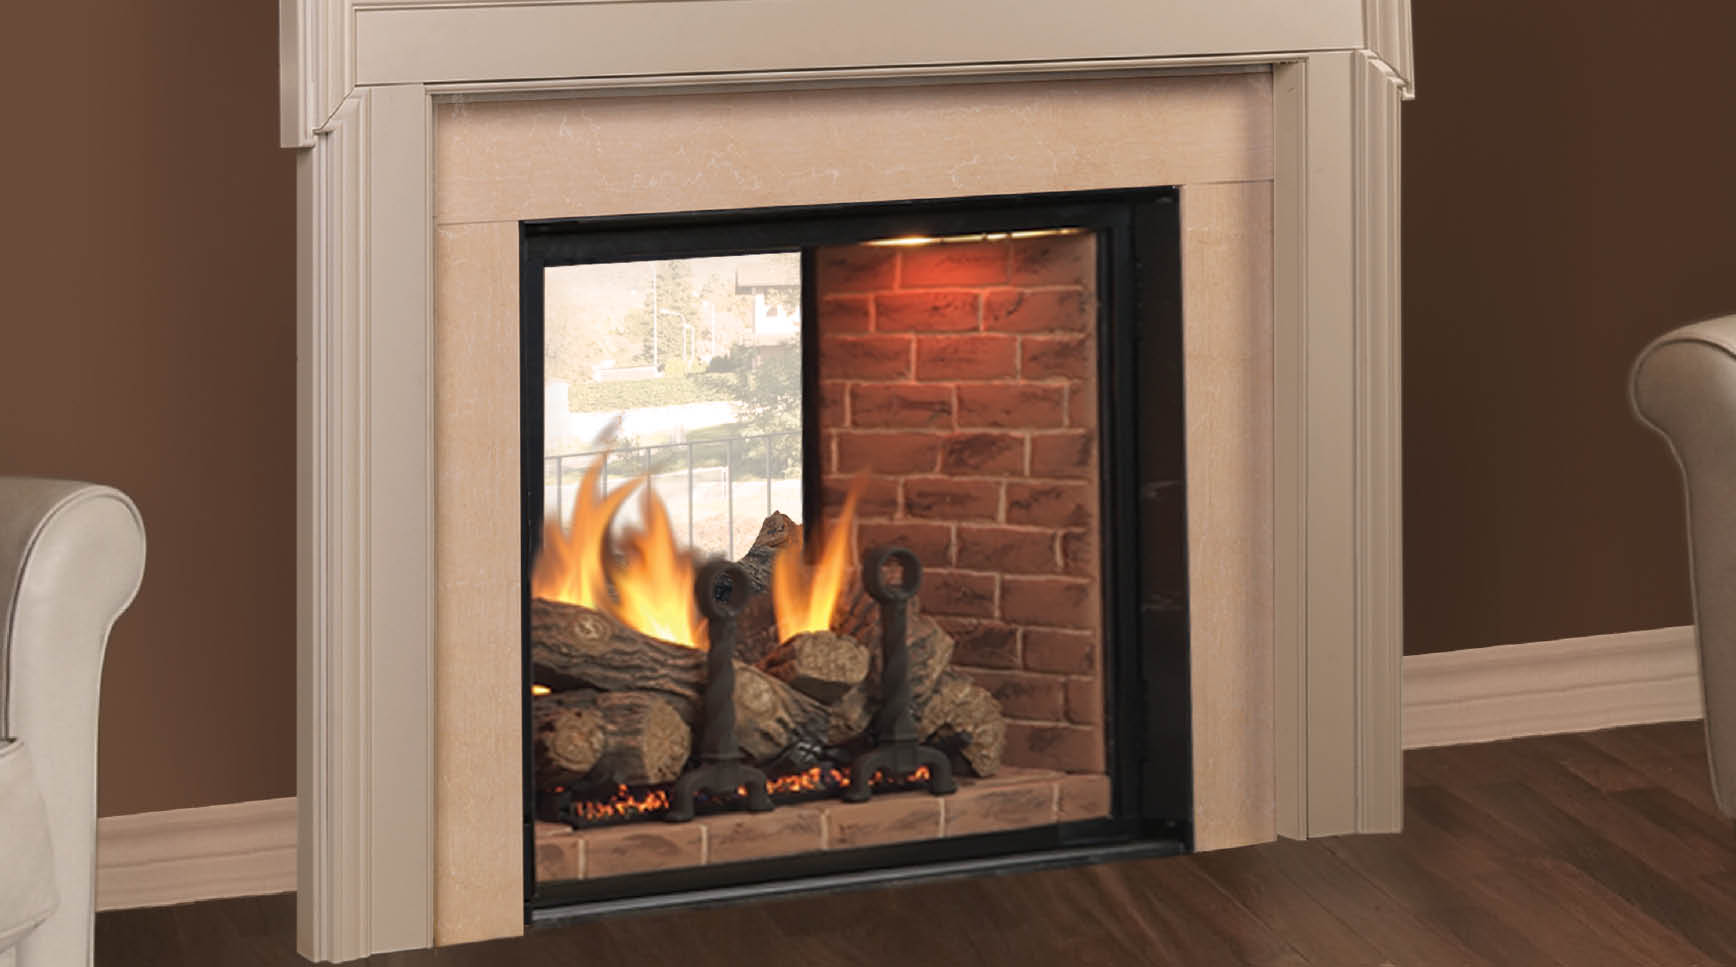 Monessen Covington See-Thru Direct Vent Gas Fireplace for any room. See our fireplace store in San Jose